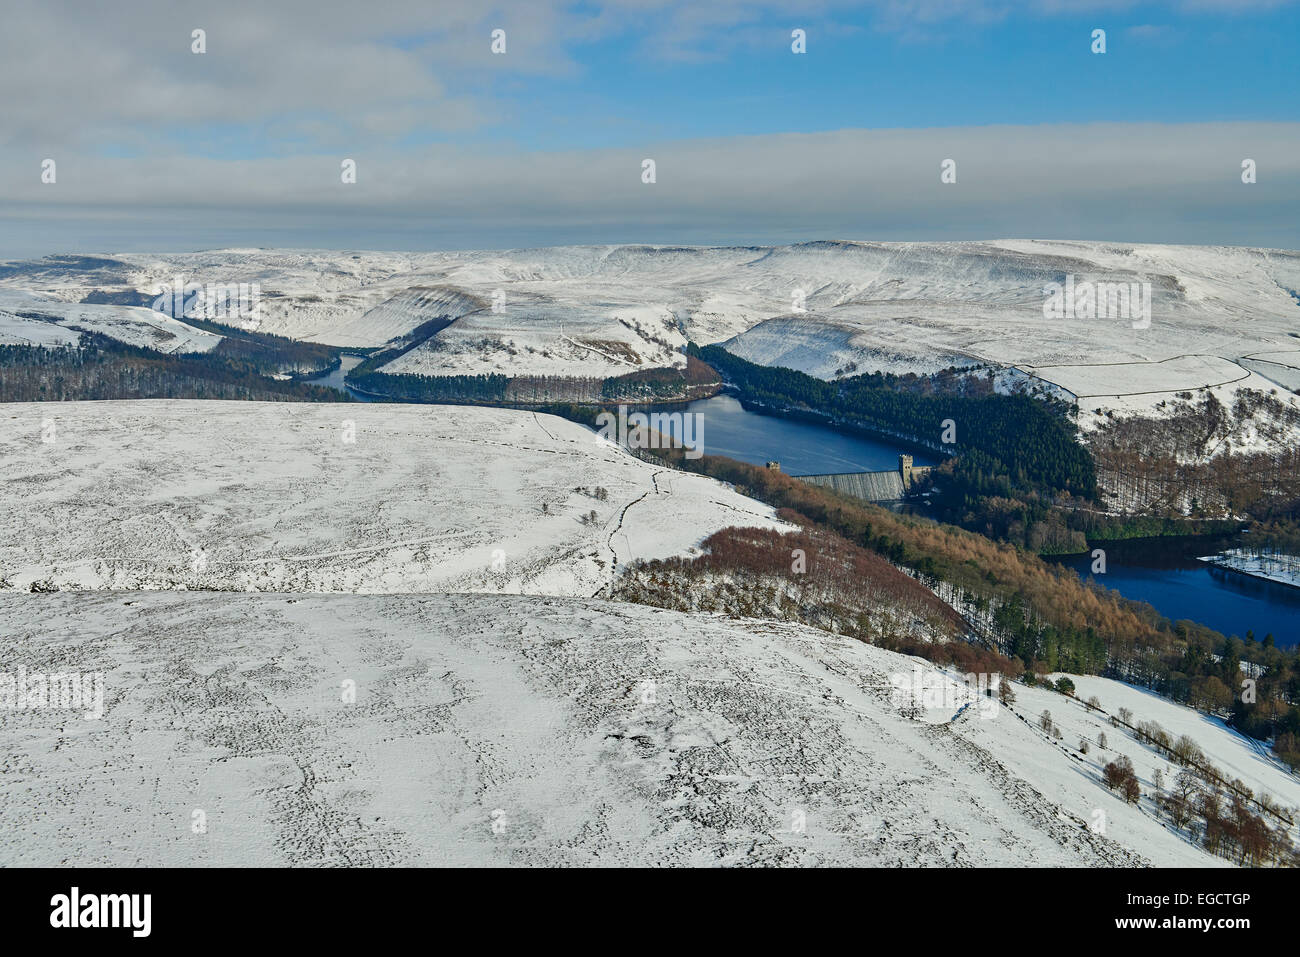 Aerial photograph of Howden and Upper Derwent reservoirs. - Stock Image